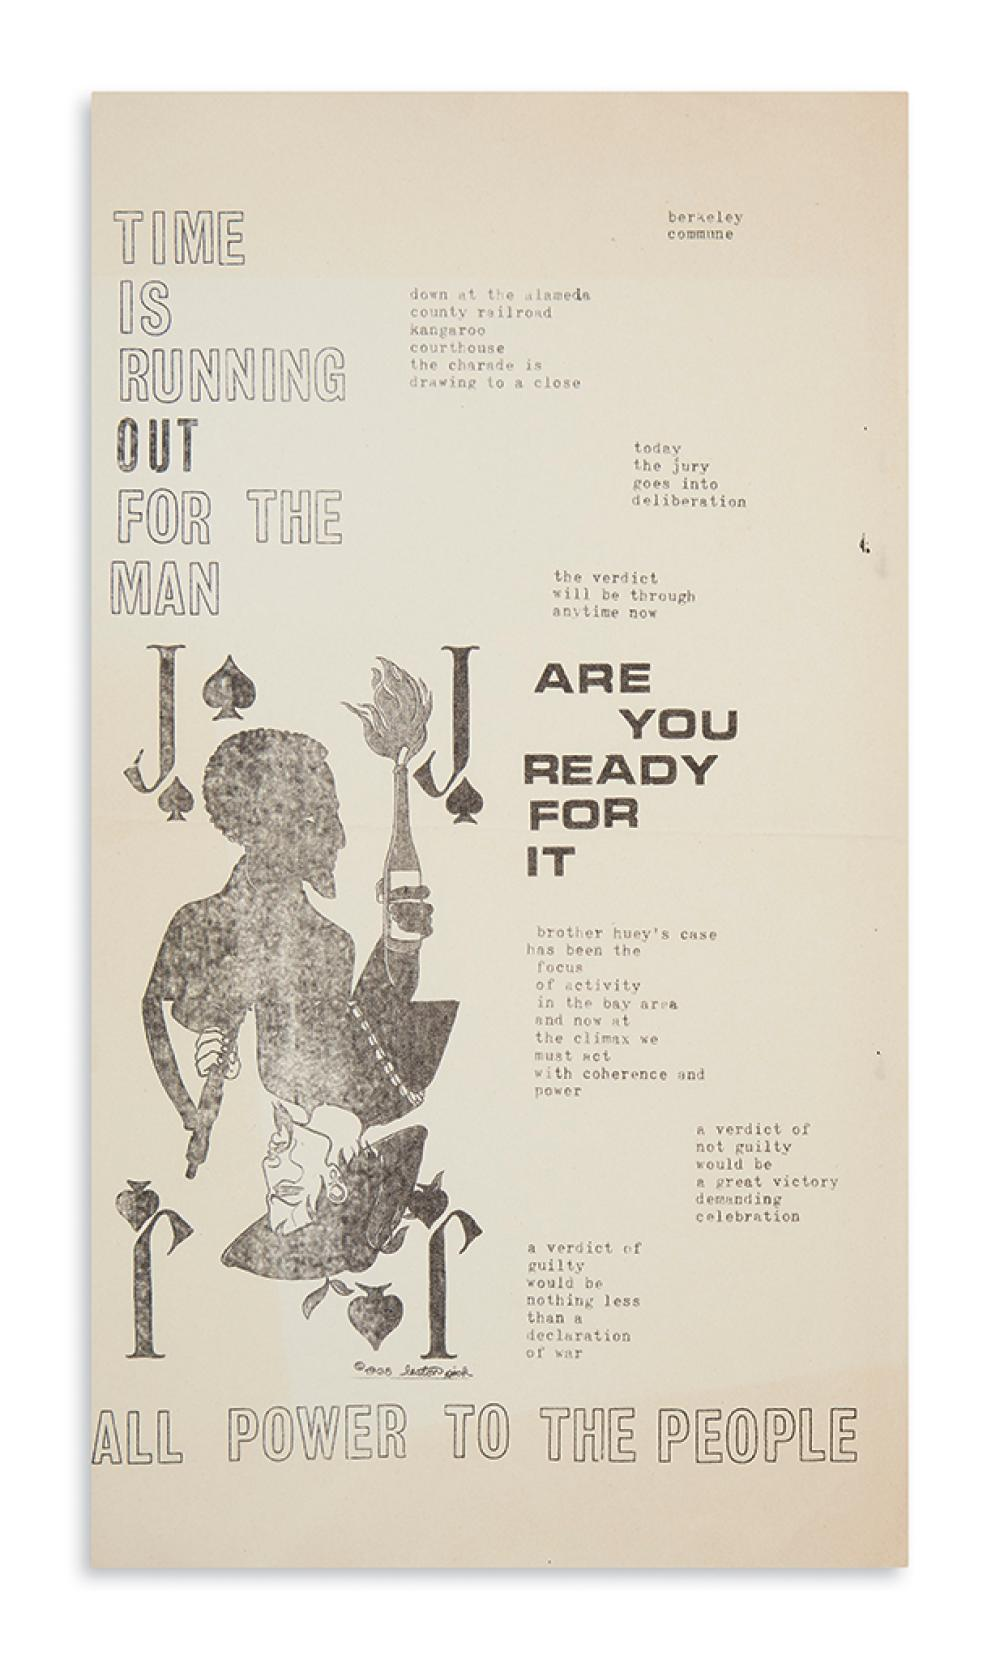 (BLACK PANTHERS.) Time is Running Out for the Man, Are You Ready For It, All Power to the People.